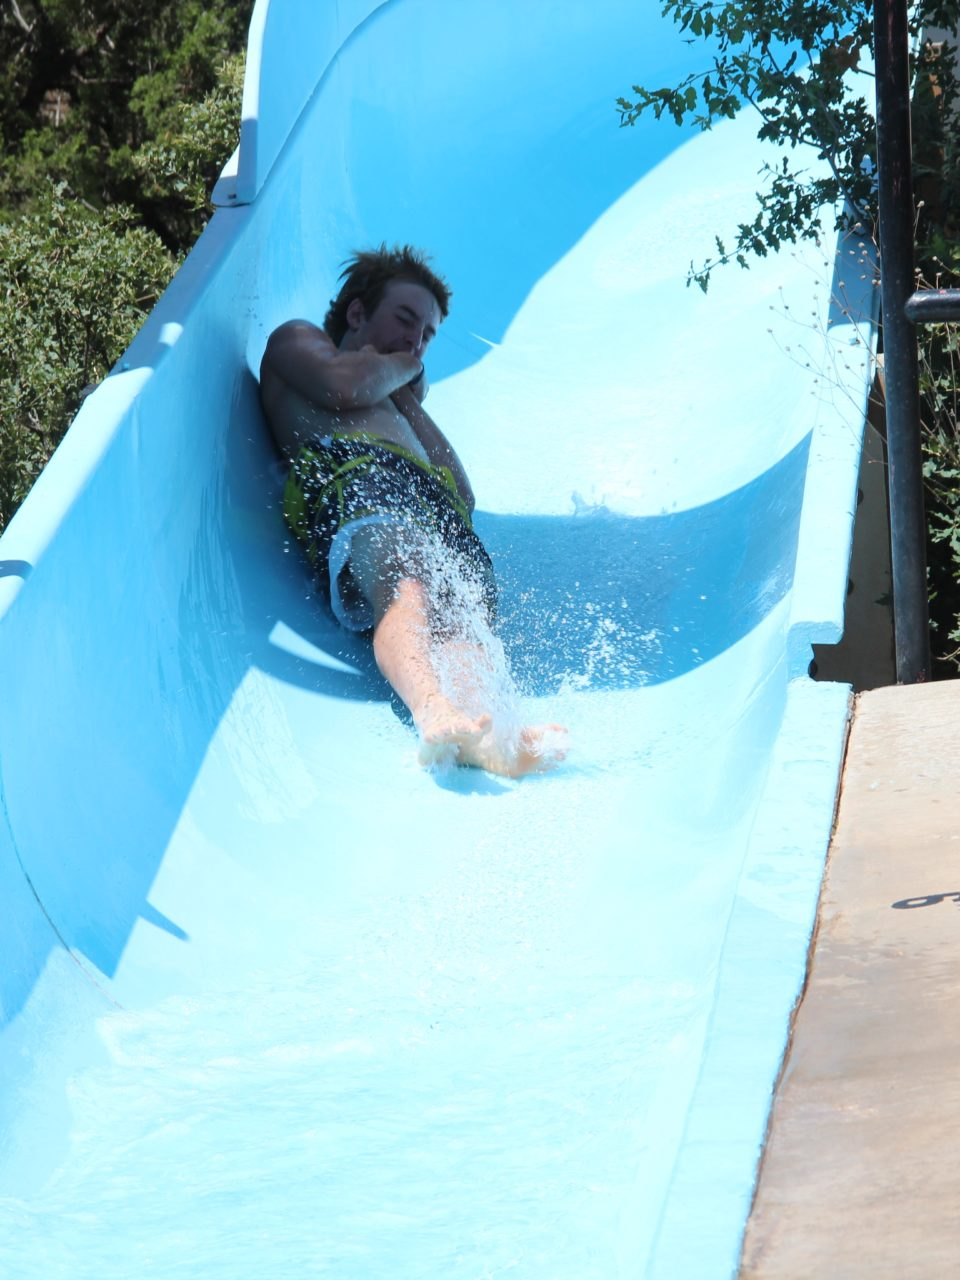 Giant Waterslide